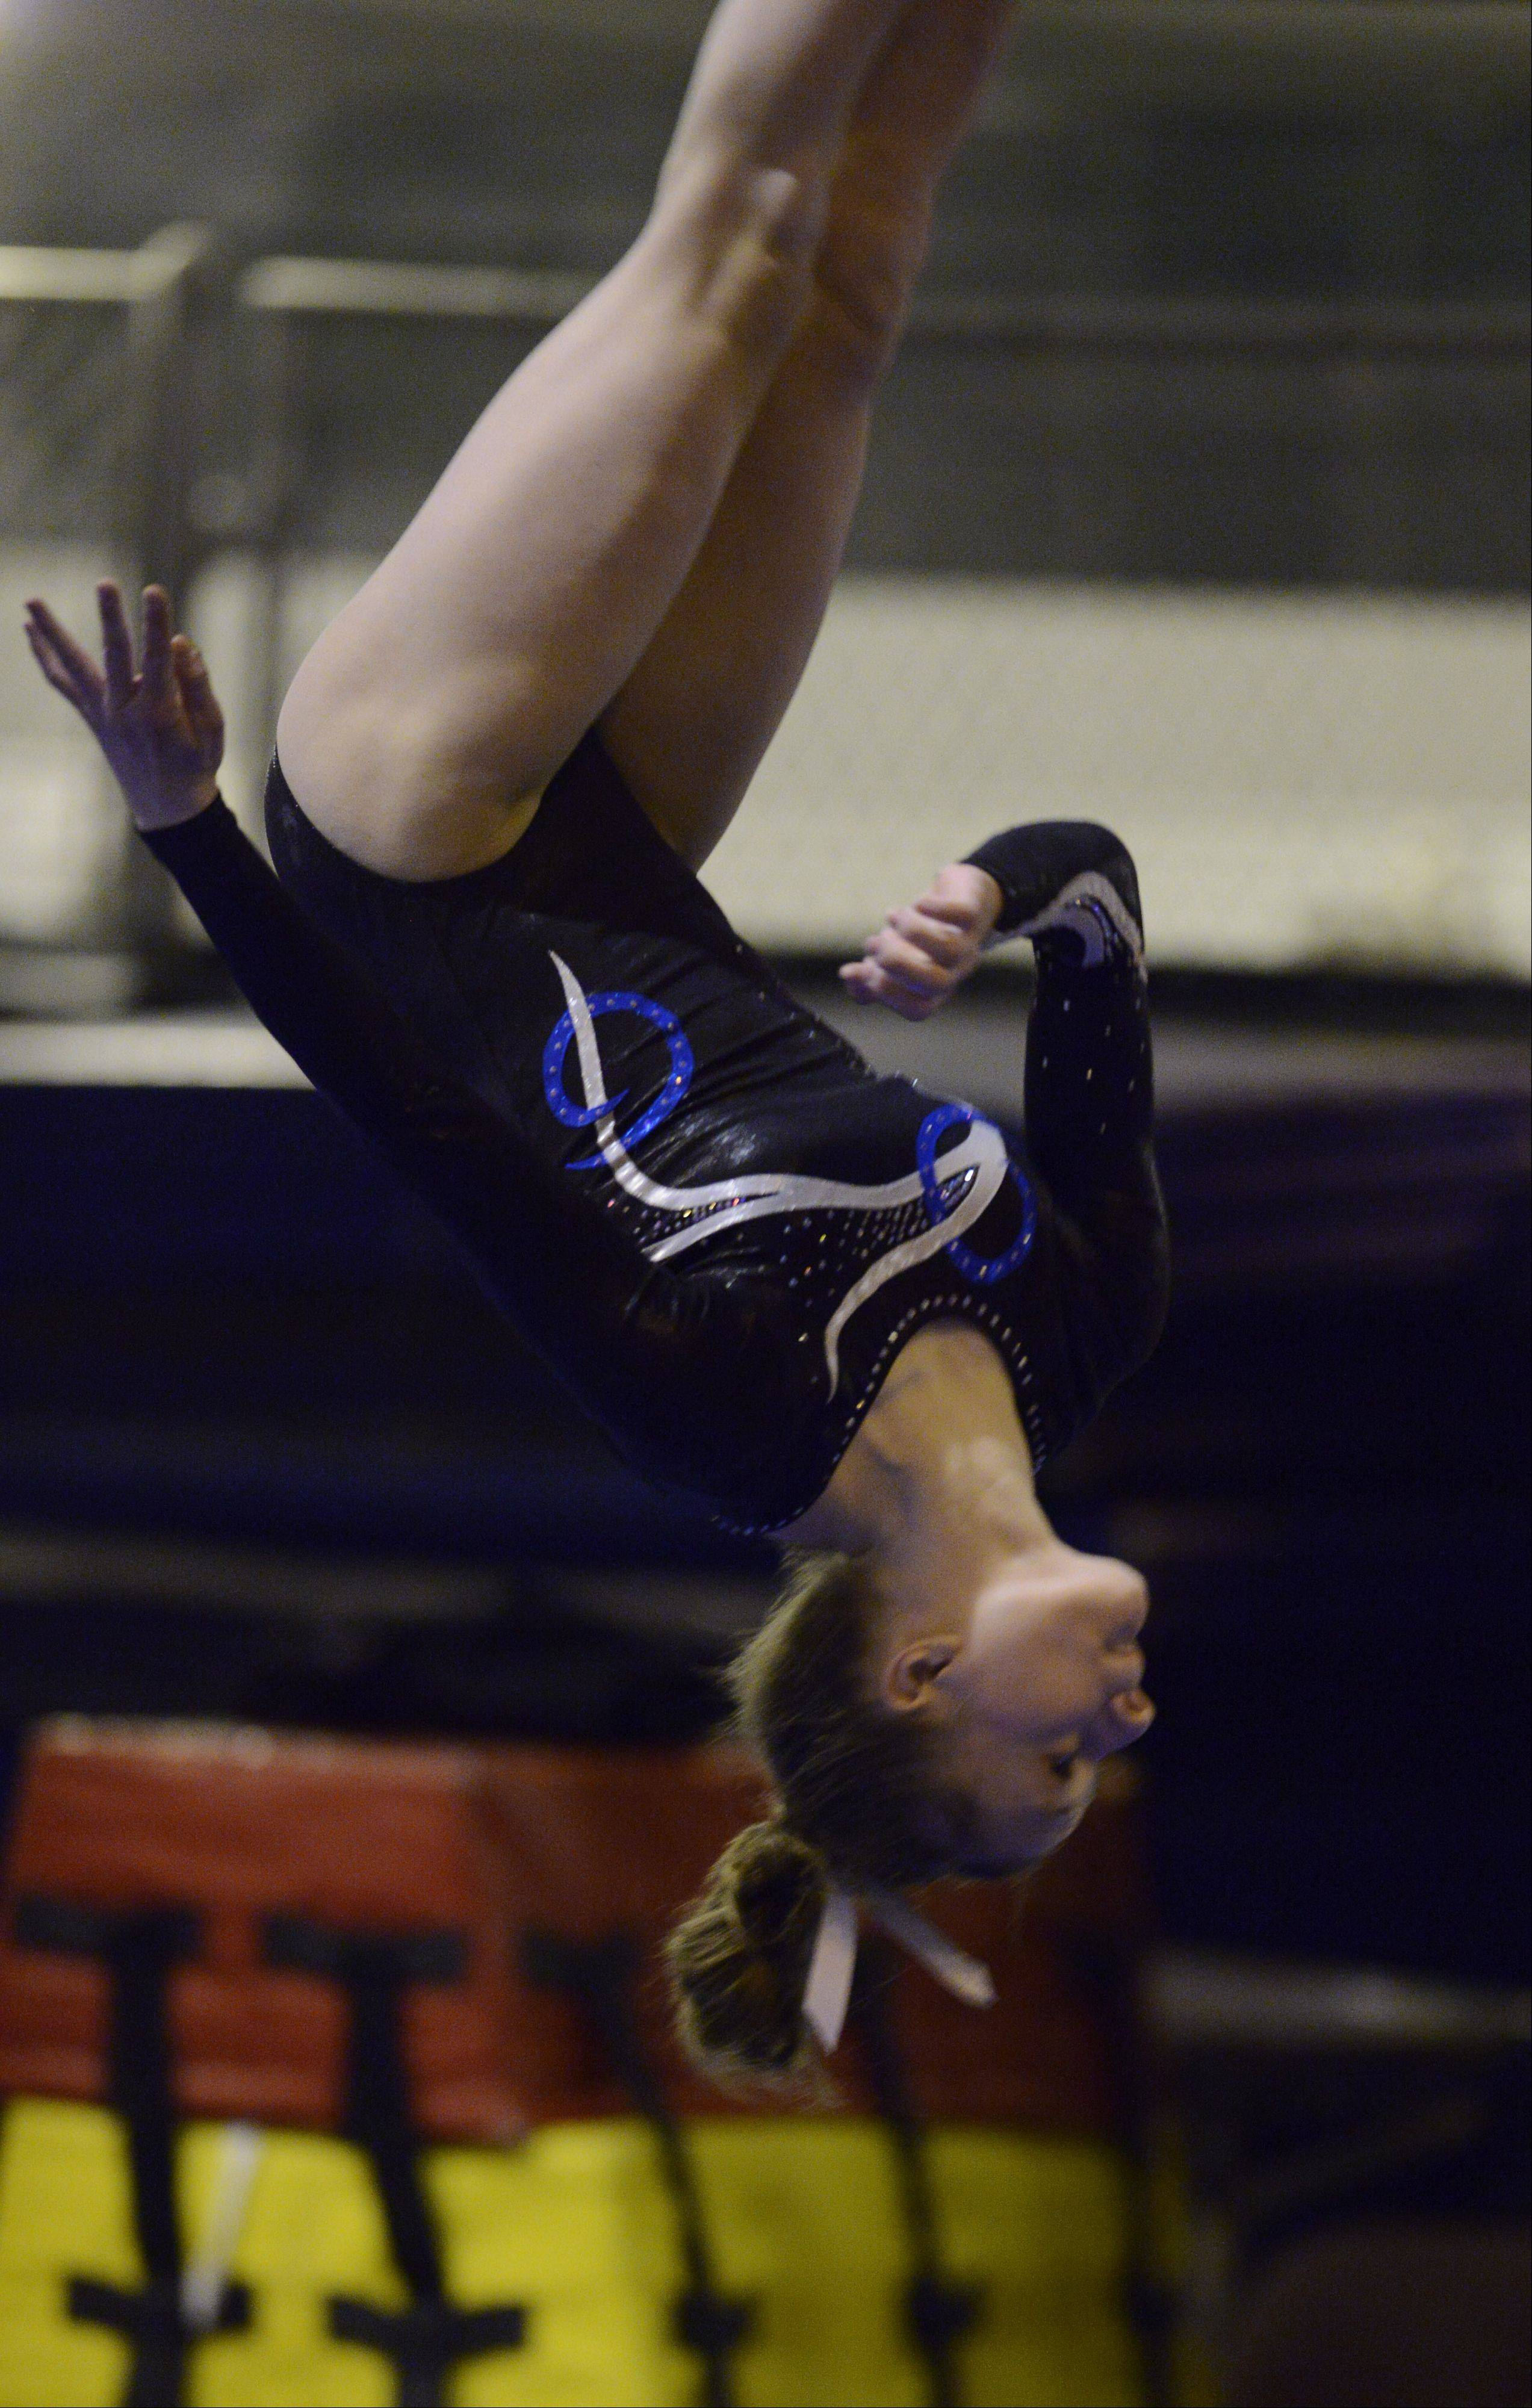 Prospect's Maddie Larock competes on the floor exercise during Wednesday's meet with Buffalo Grove and host Elk Grove.